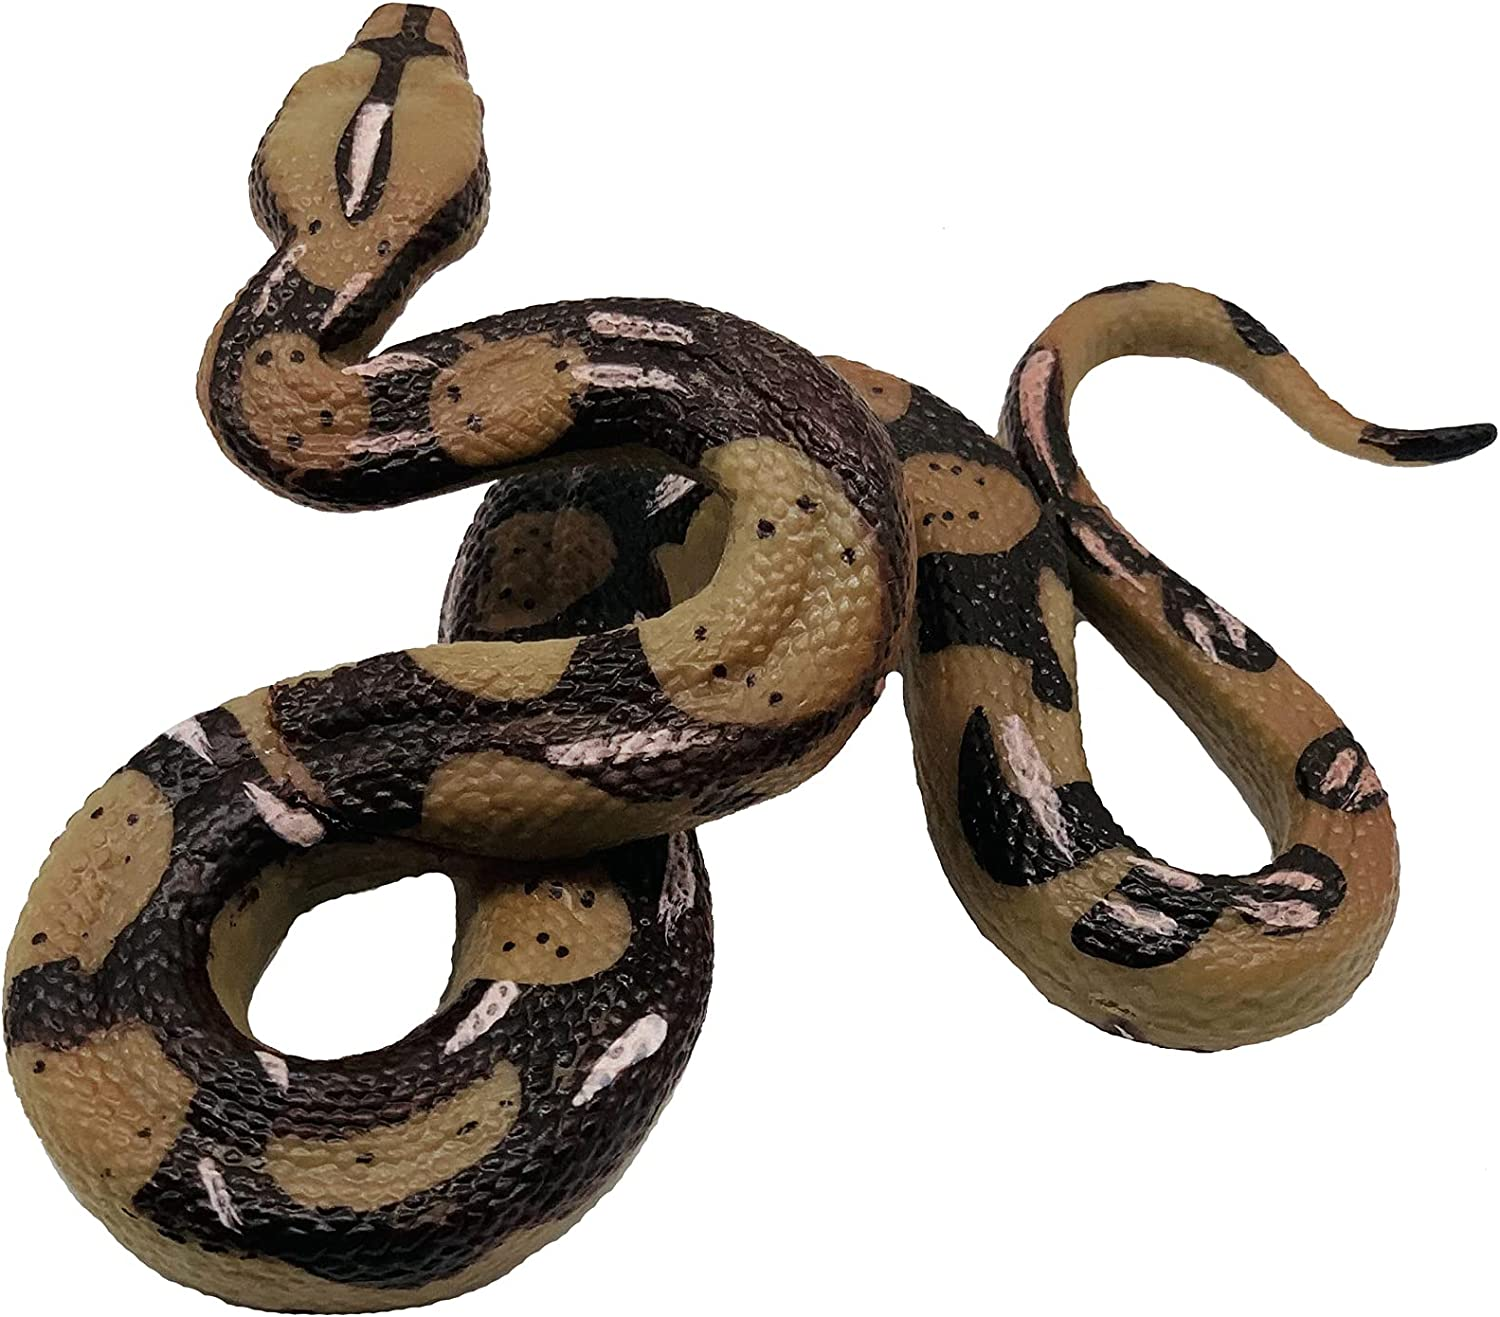 Higherbros Boa Constrictor Python Marsh Animal Figures for Children's Animal Figurines Toys Snake Toys Bath Toys Beach Toys Scary Toys Prank for Home and Garden Decorating